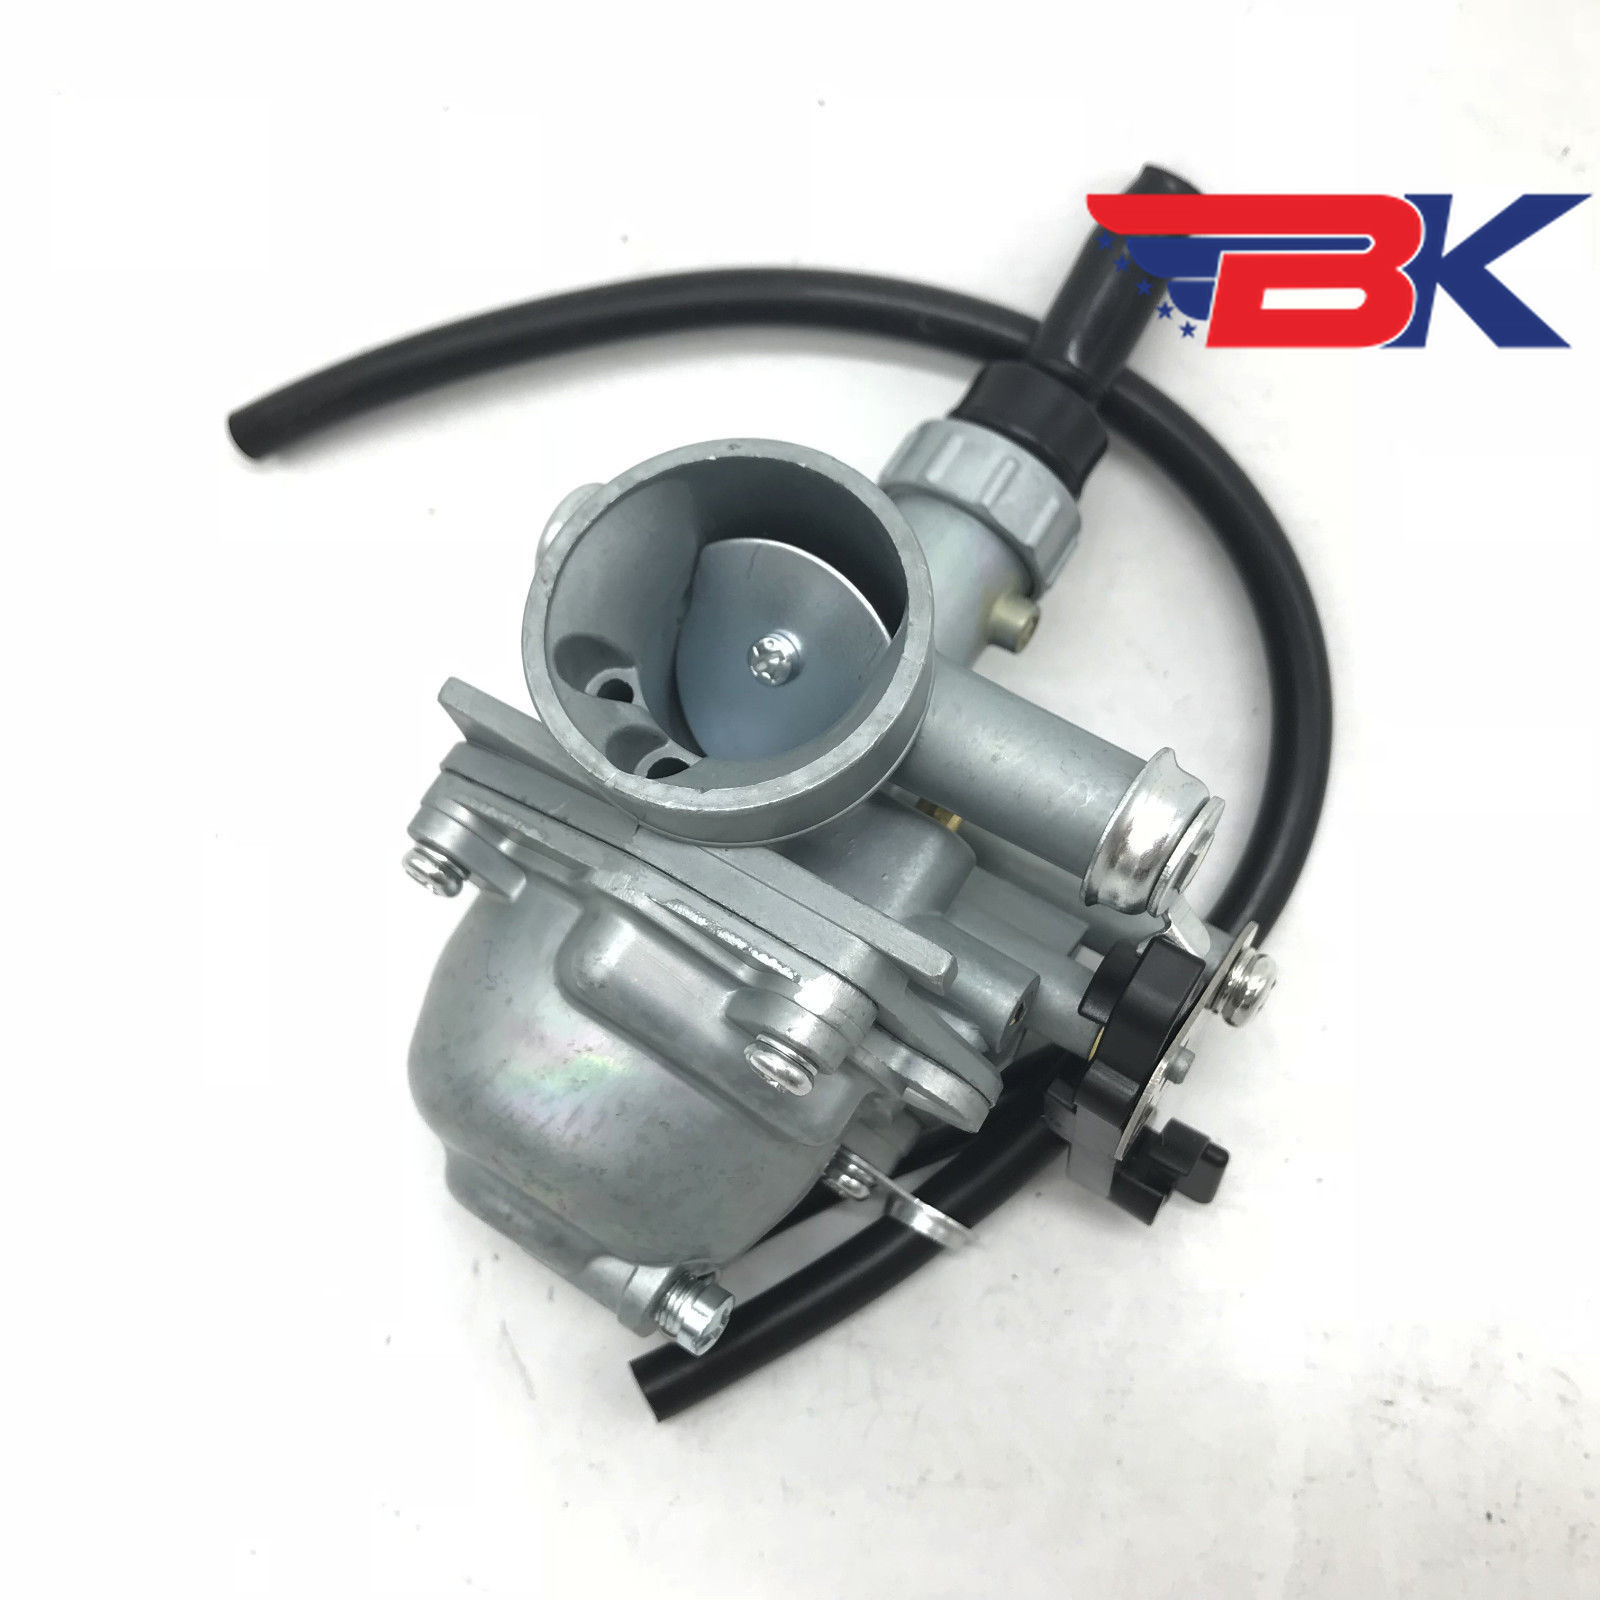 Atv Parts & Accessories Back To Search Resultsautomobiles & Motorcycles Reliable Vm16 Mikuni Carby 50cc 70cc 110 125cc Pit Dirt Bike Atv Scooter 19mm Z50 Dax Carb Carburetor